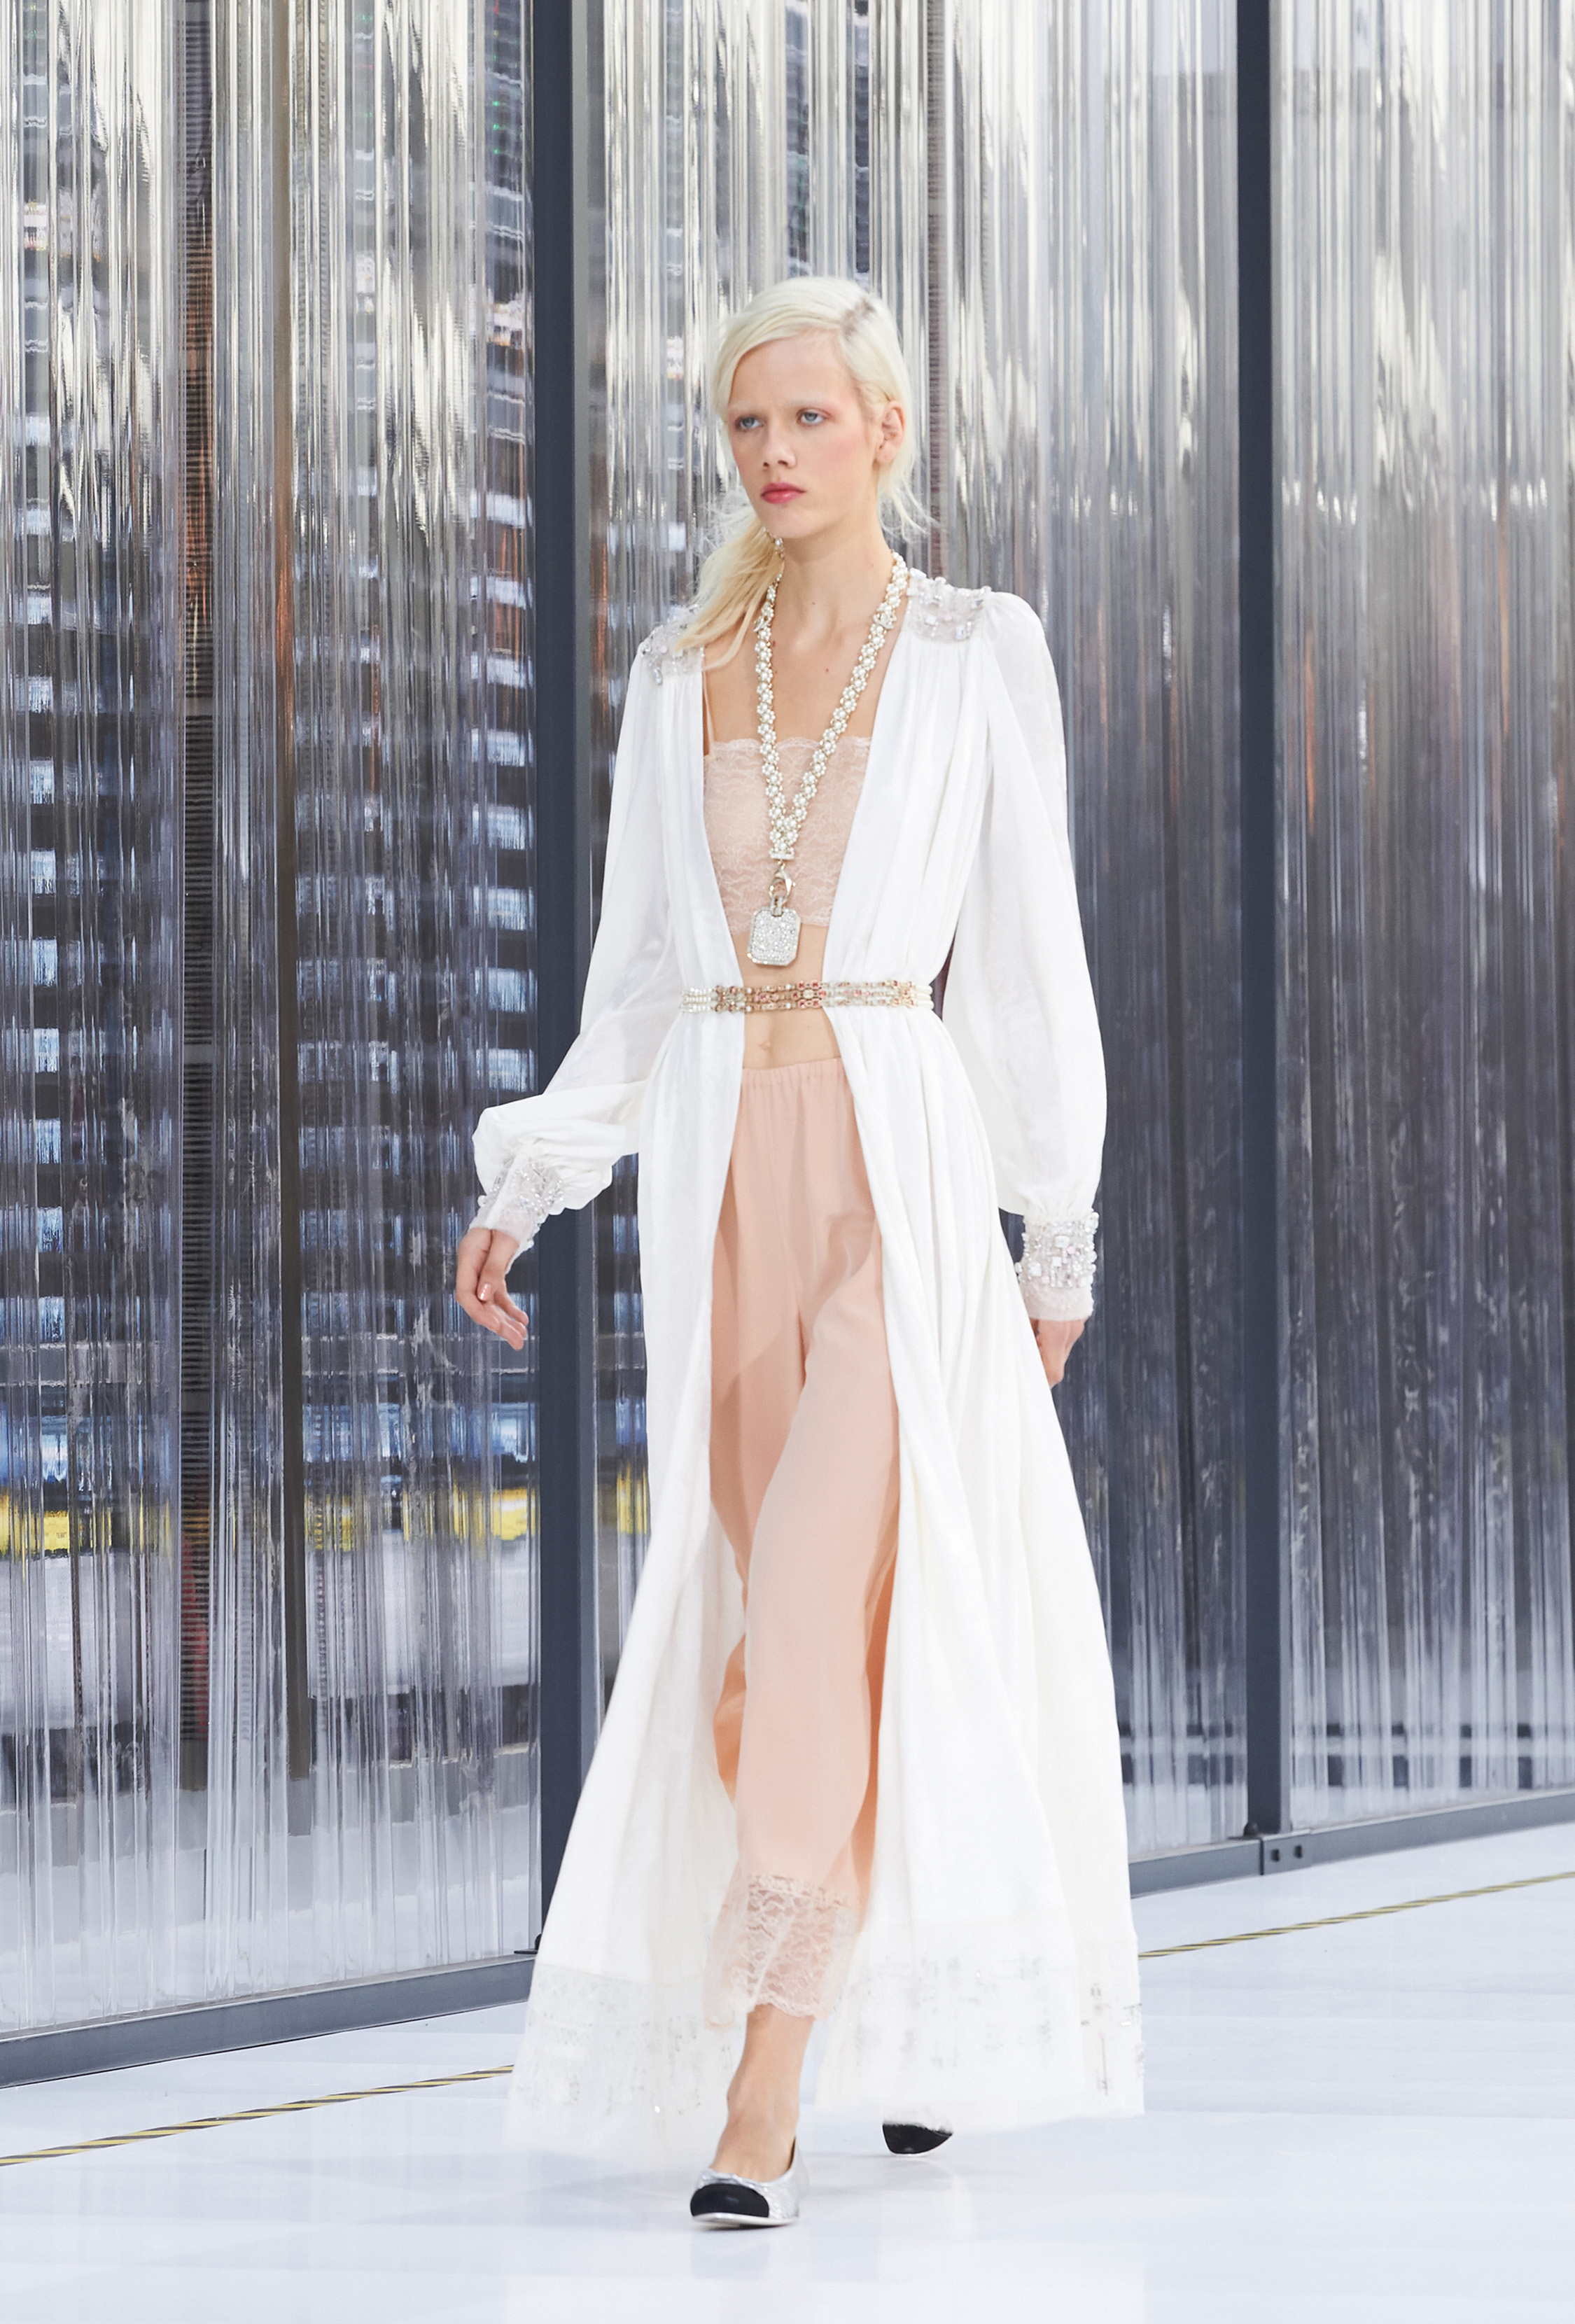 Intimate-Modernity-Chanel-spring-summer-collection-style-2017